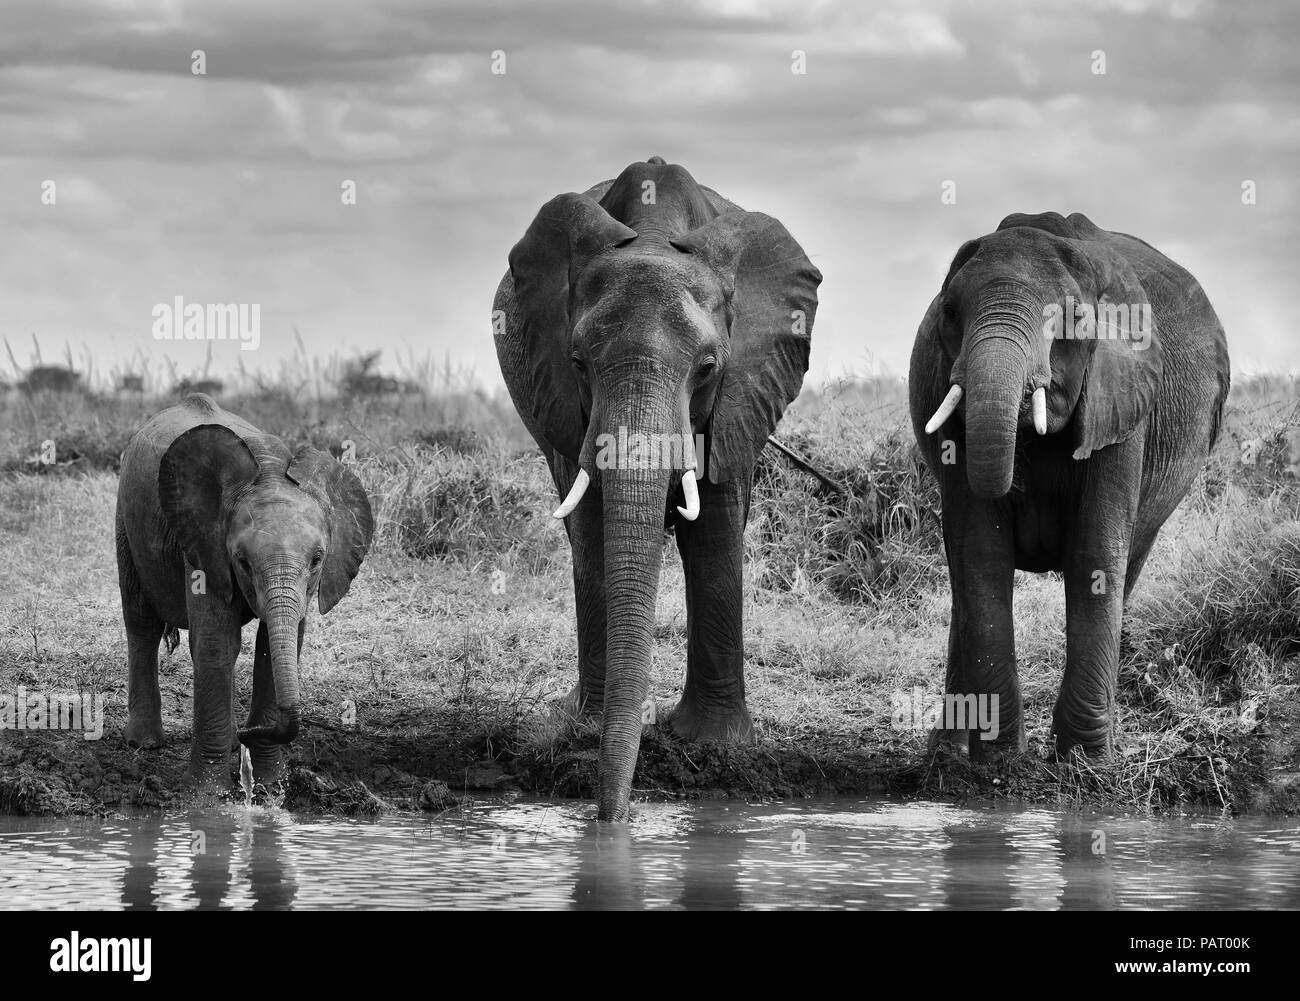 Family of elephants at the pool - Stock Image